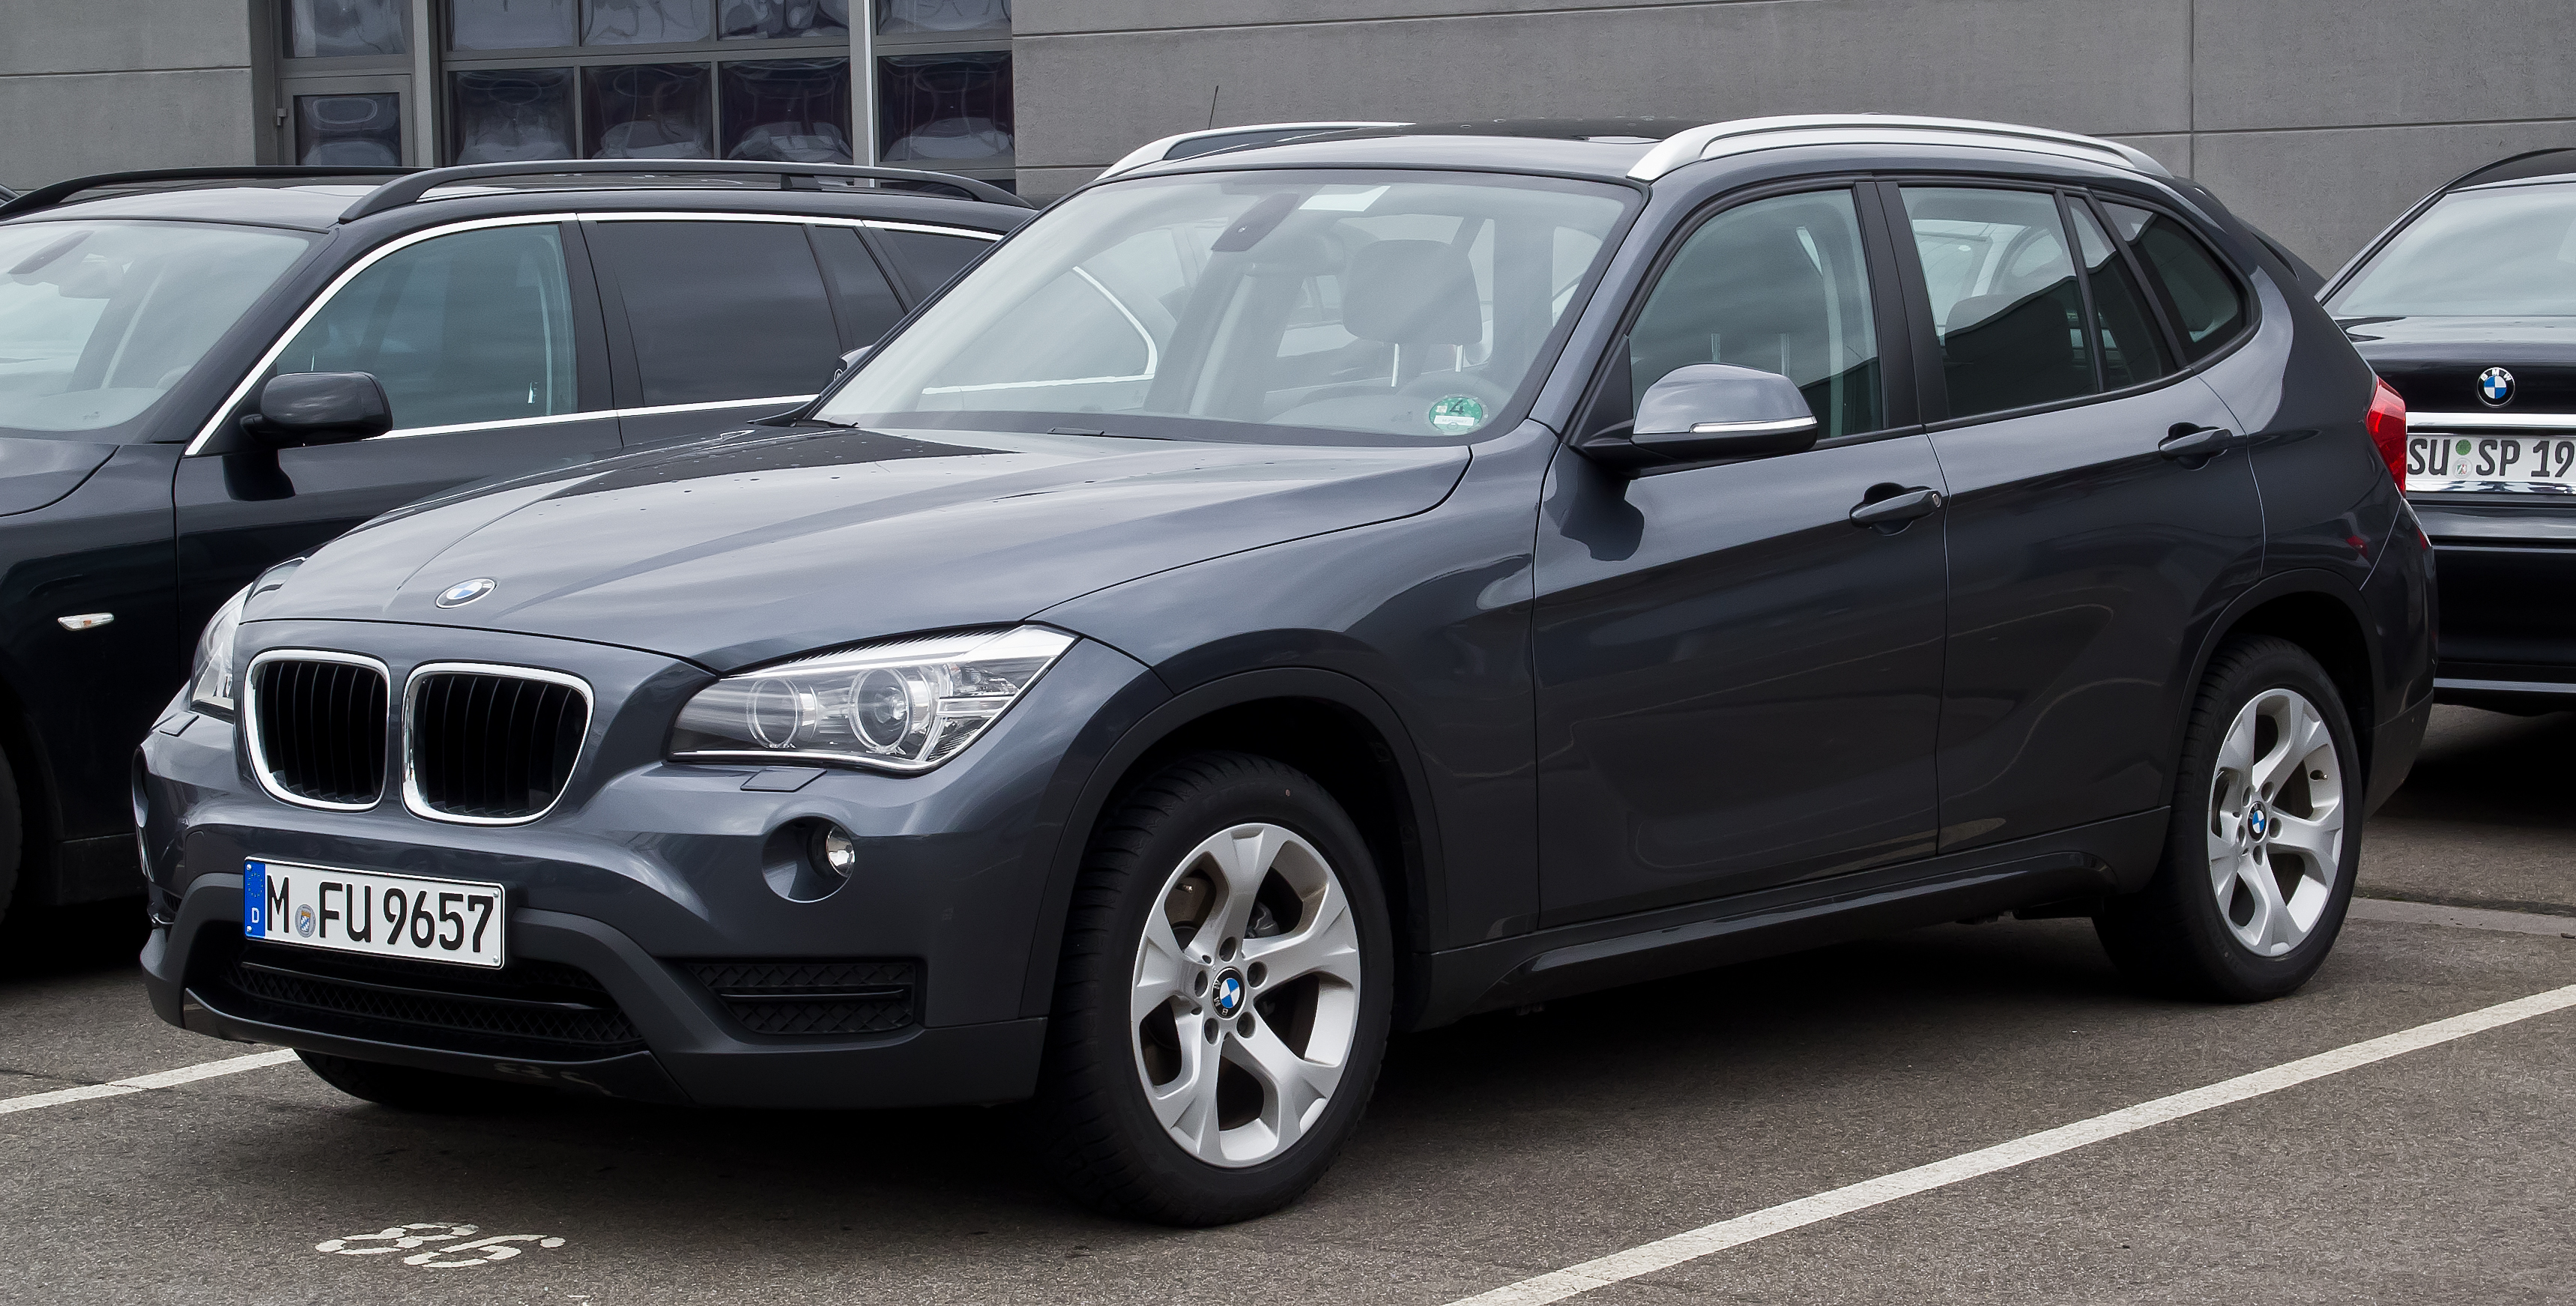 file bmw x1 e84 facelift frontansicht 31 dezember 2012 d wikimedia commons. Black Bedroom Furniture Sets. Home Design Ideas